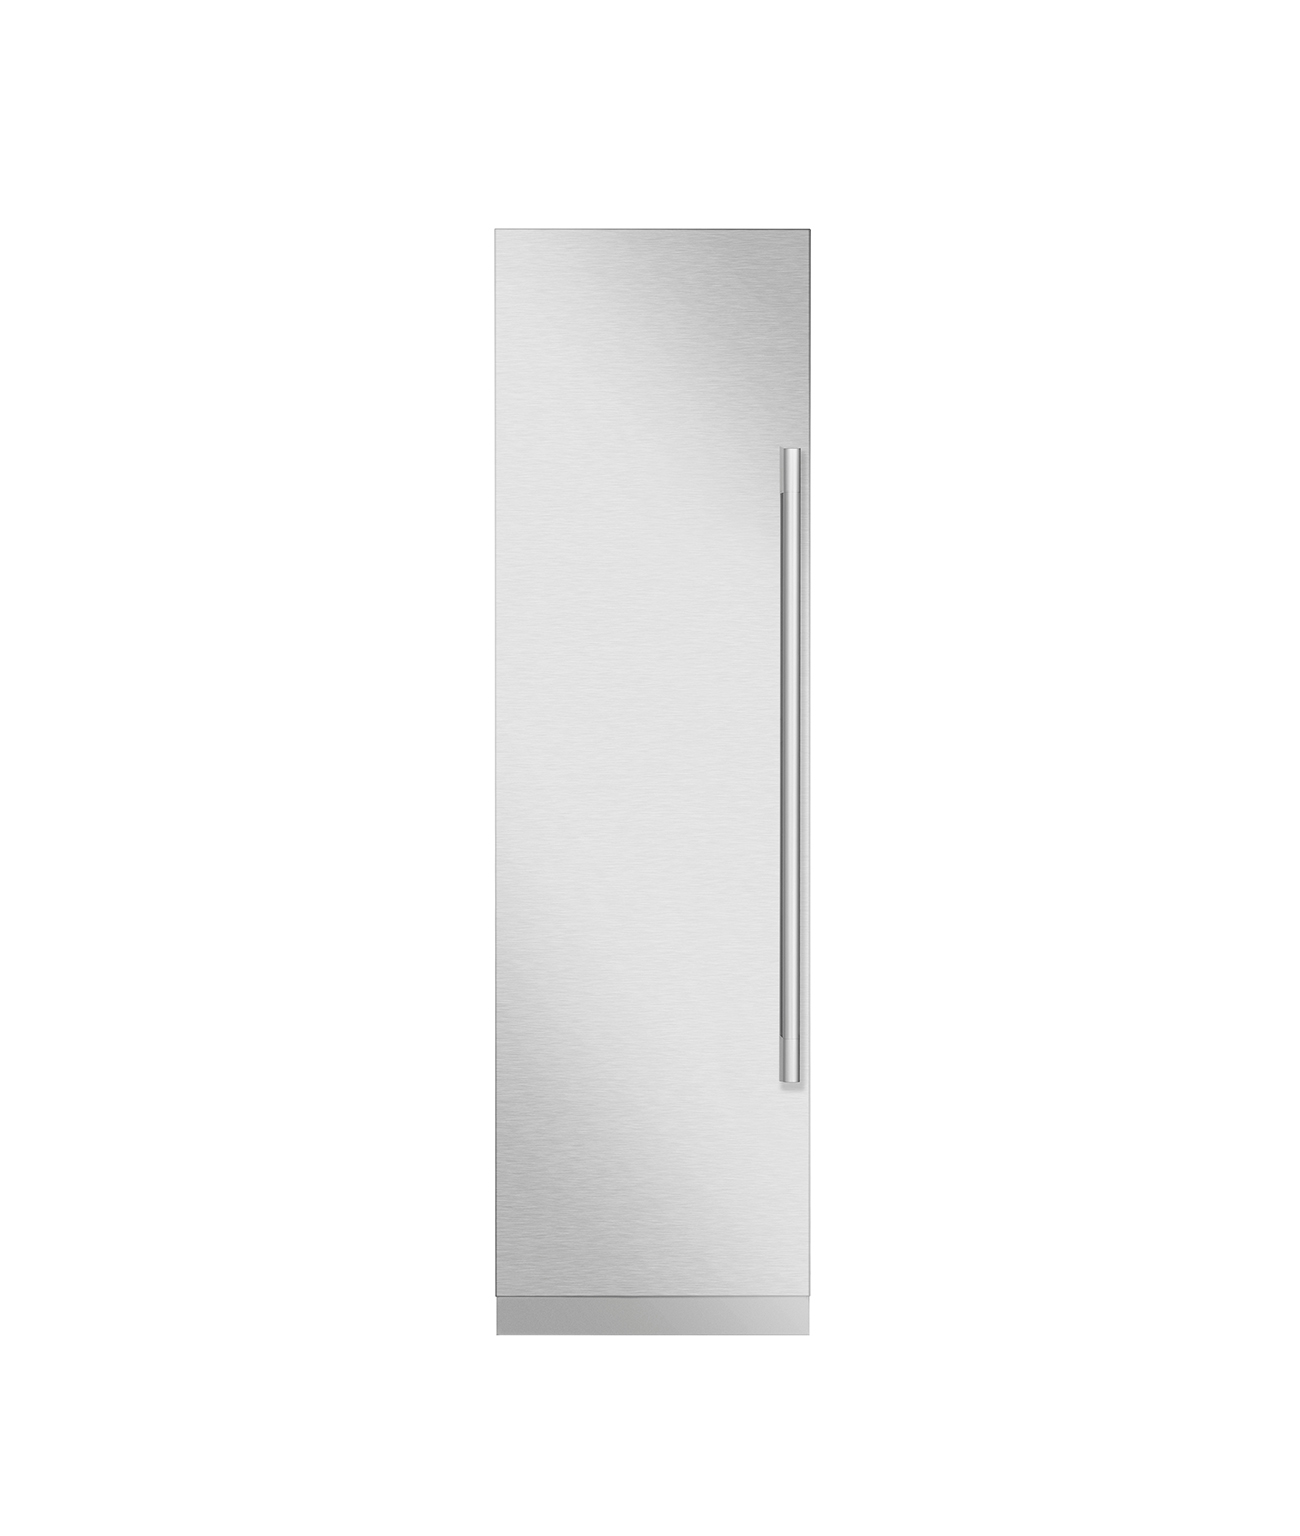 24-inch Integrated Column Freezer by Signature Kitchen Suite